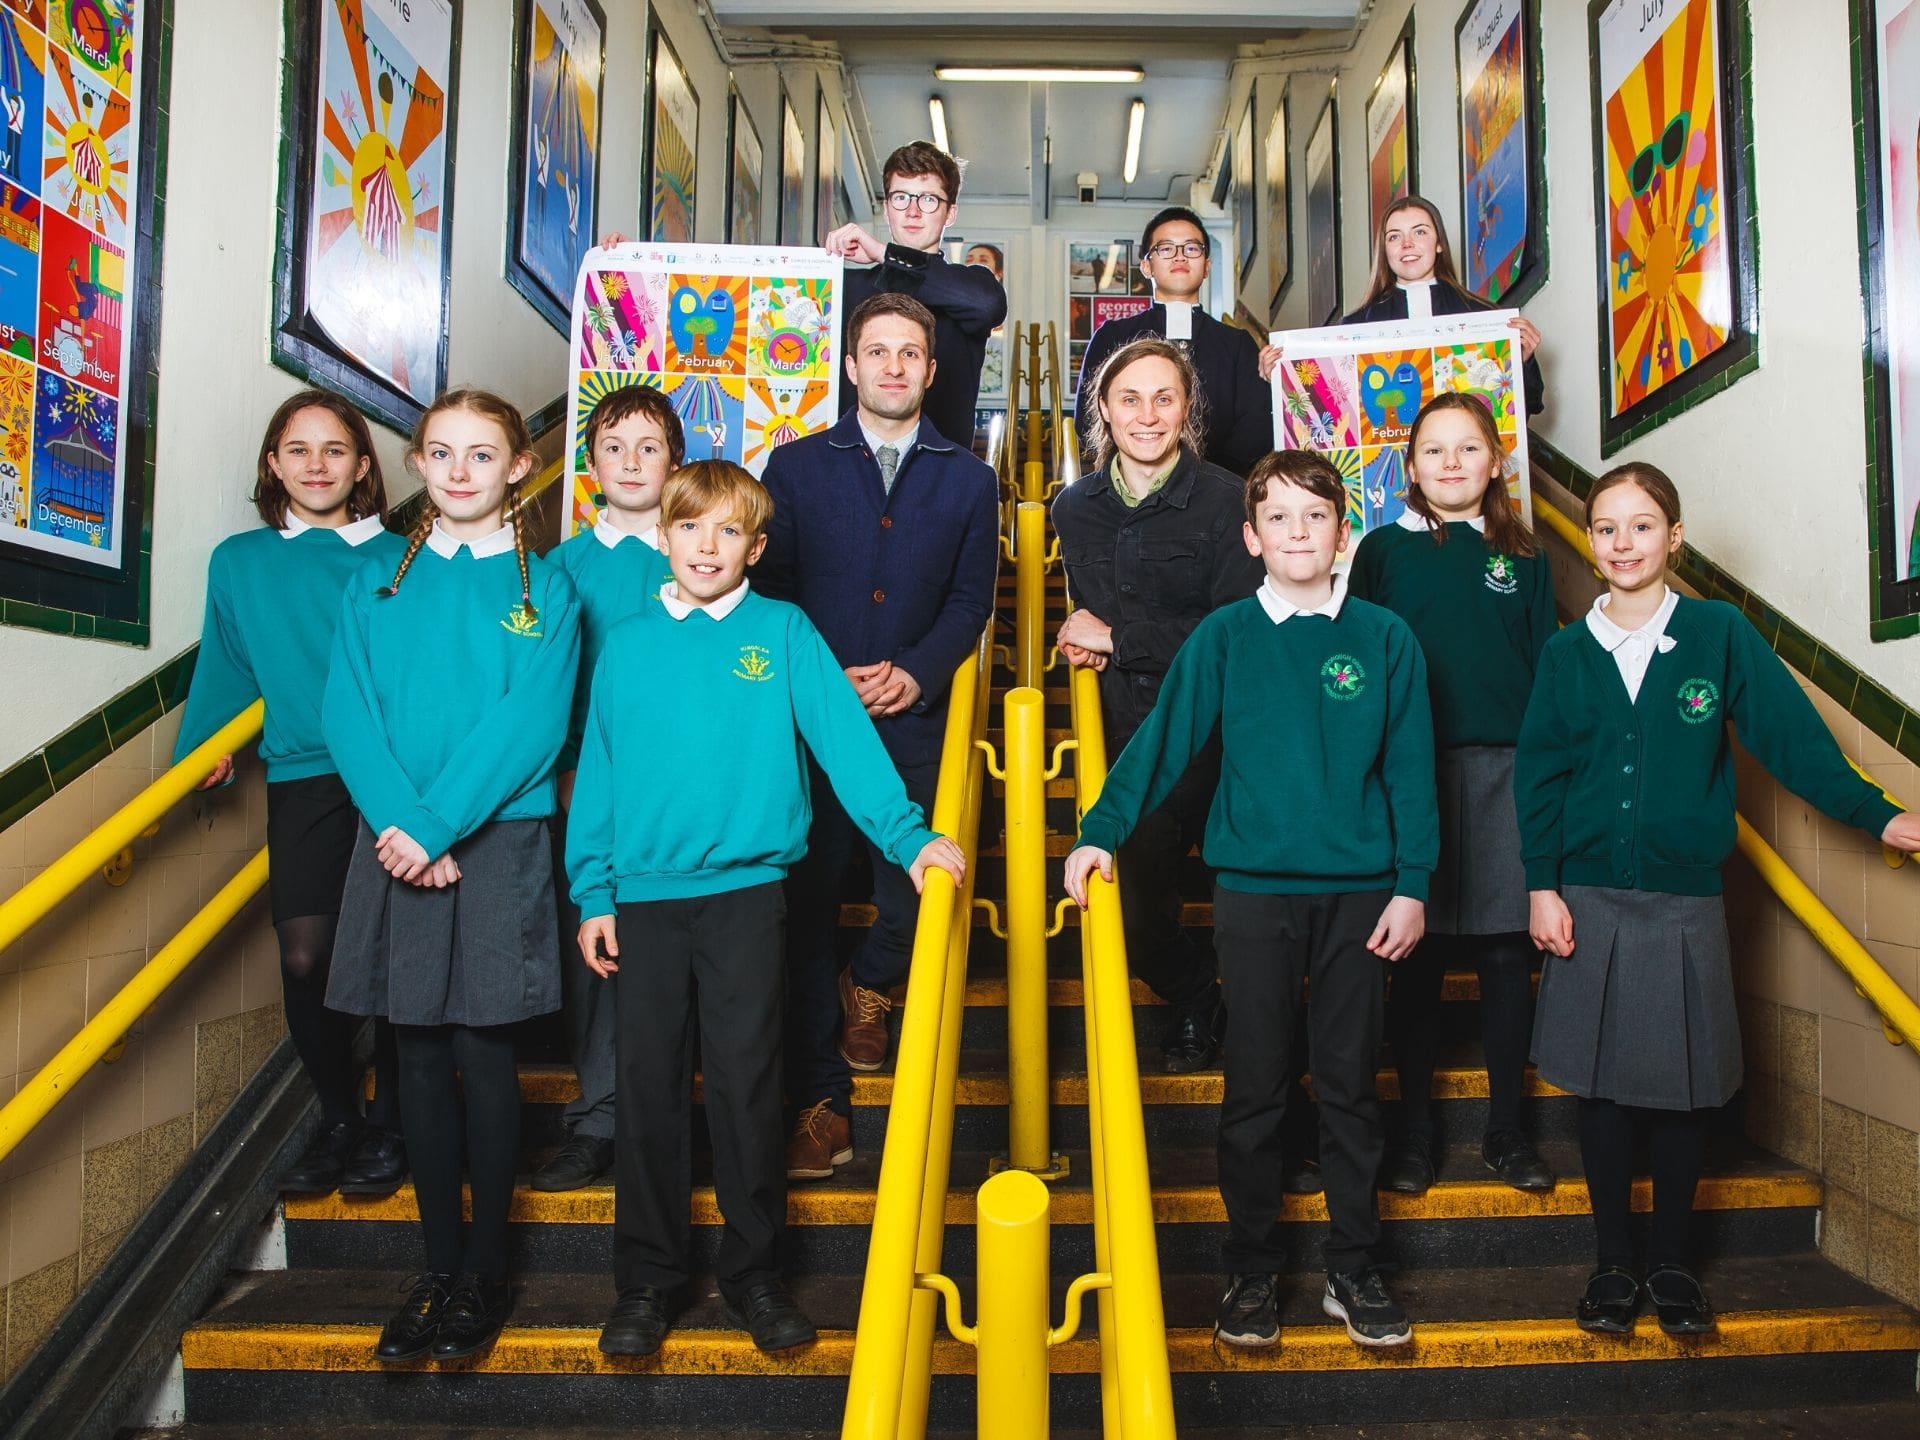 Children in school uniform at Horsham station with their artwork